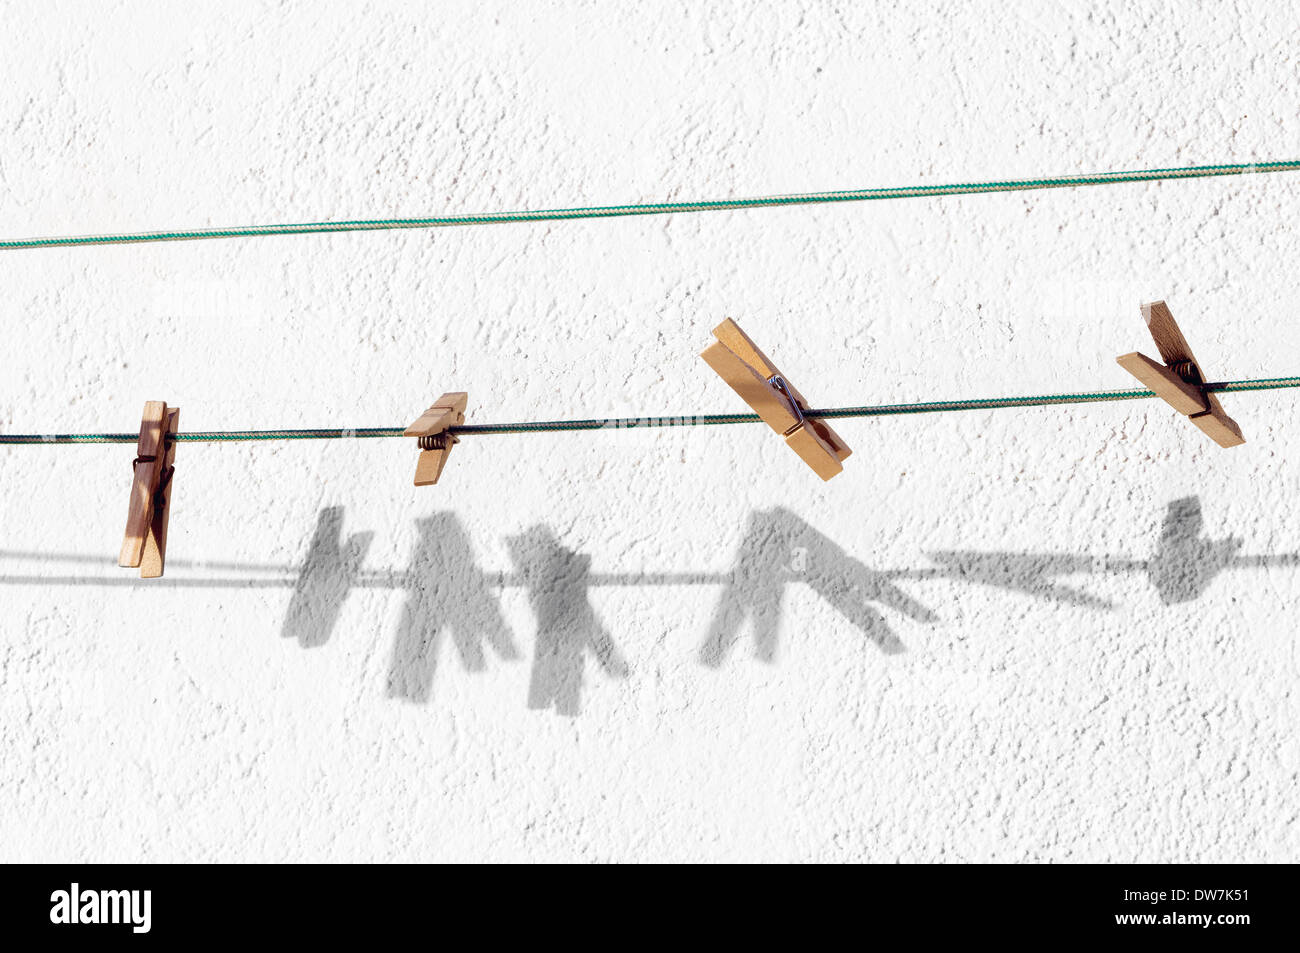 peg for clothes hanging on rope and shadows - Stock Image